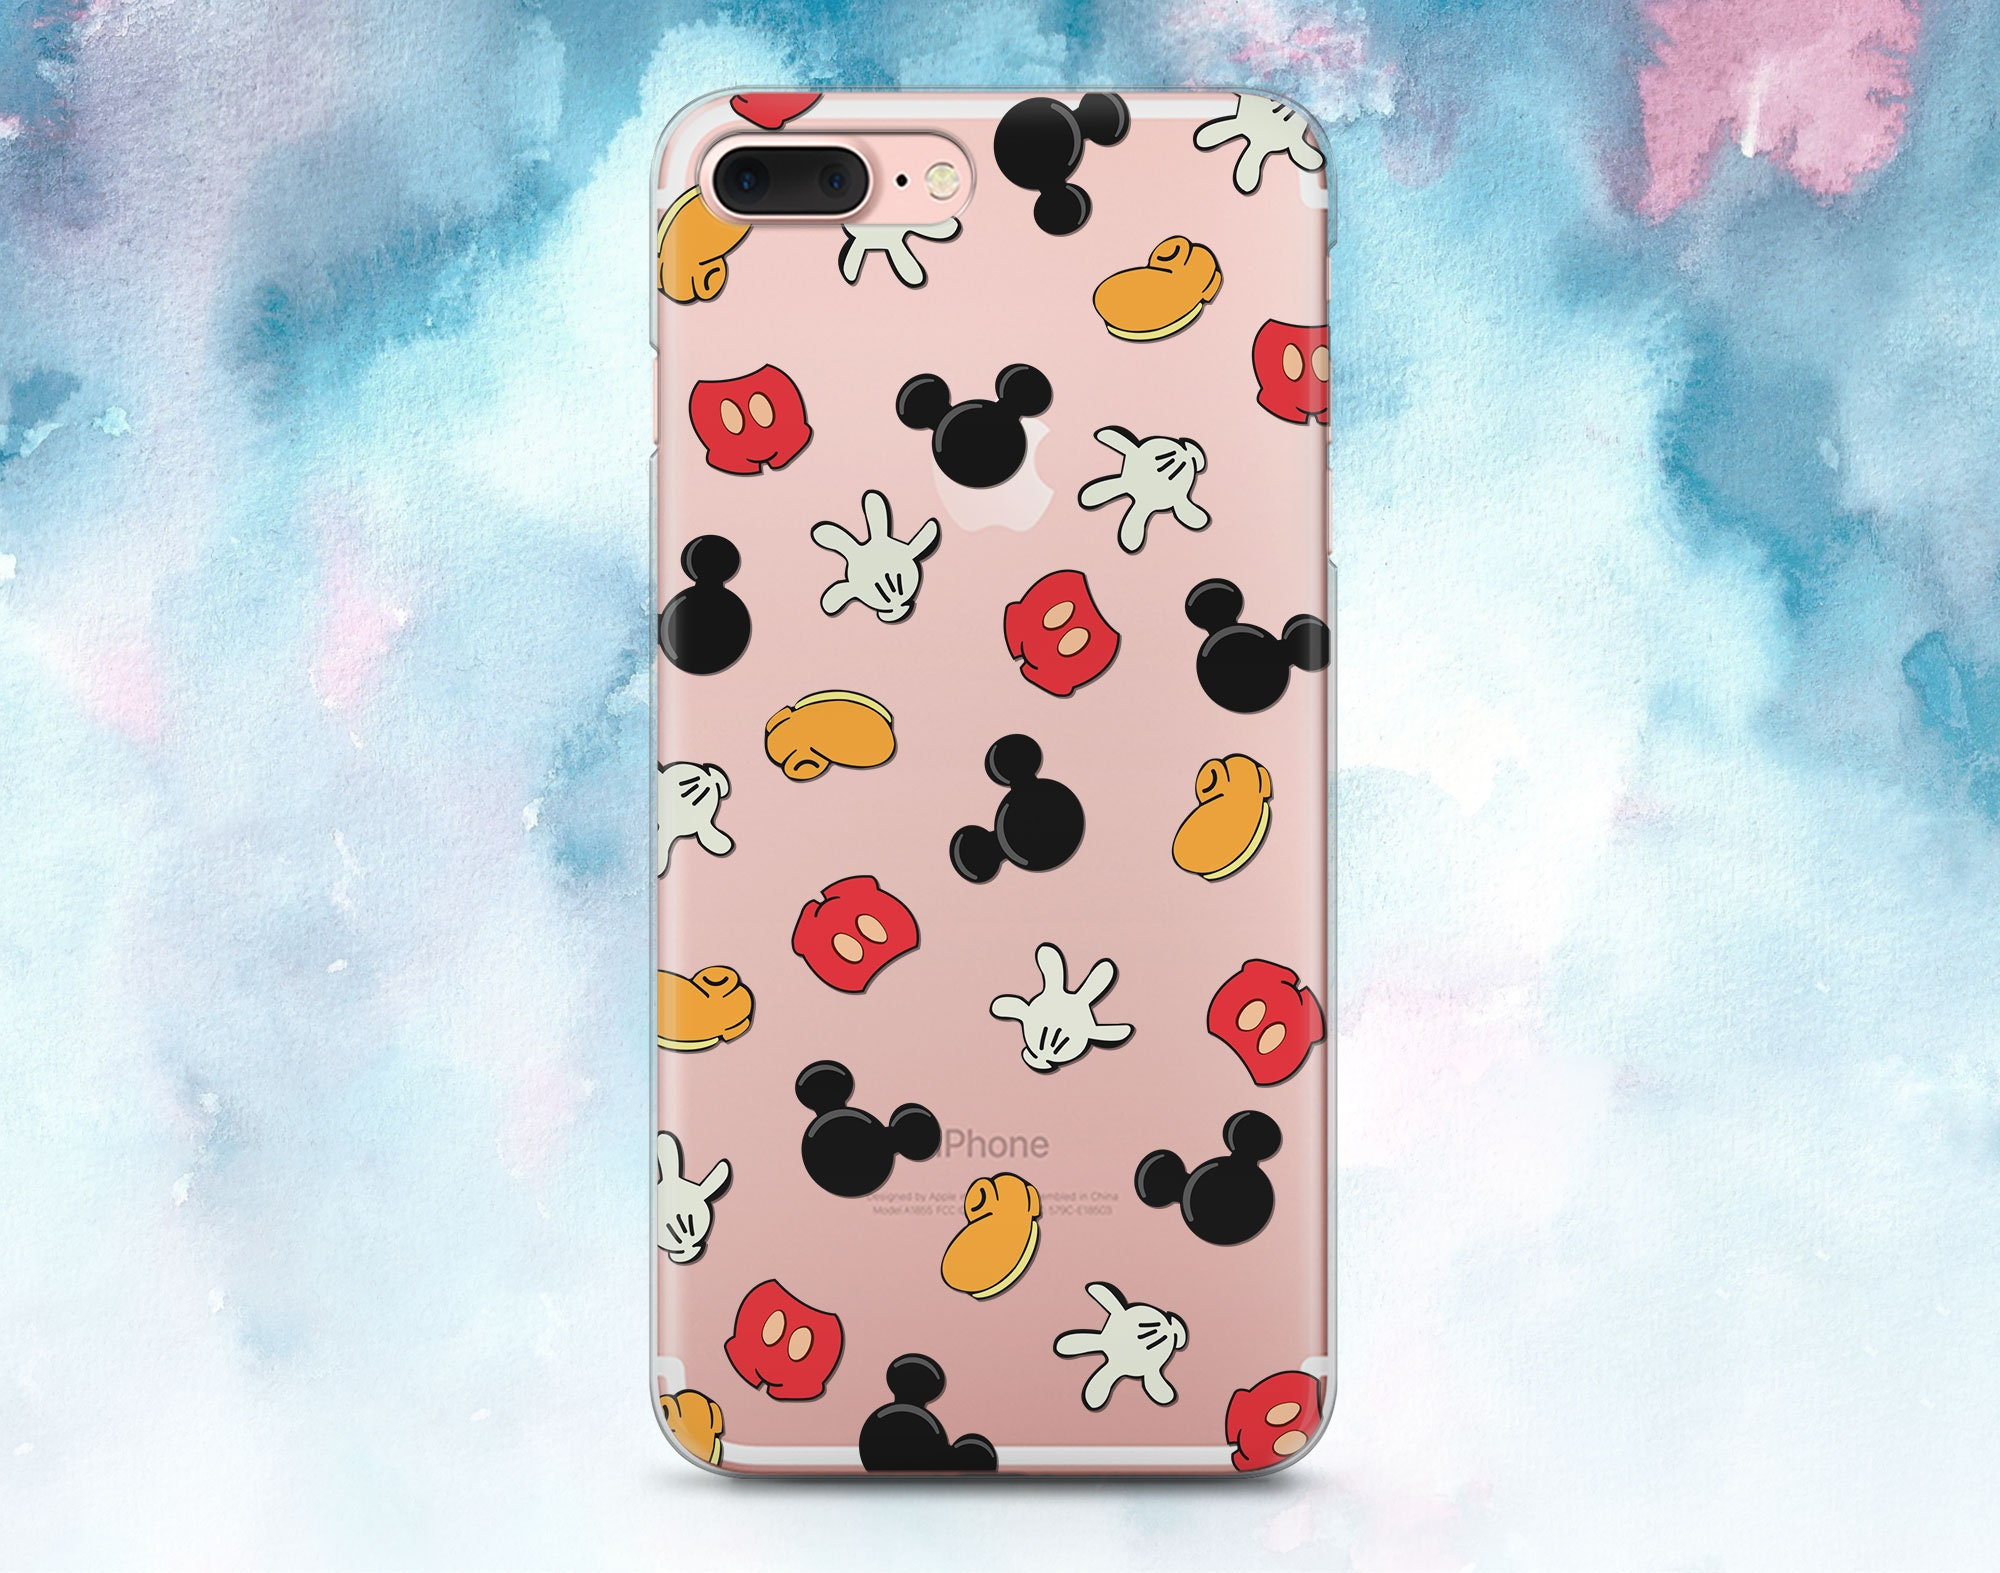 Mickey Mouse Pixel Art mickey mouse iphone x xr xs 8 7 6 5 4 case girl google pixel 3 2 case  pattern samsung 9 8 7 6 case lg g8 g6 g5 case galaxy note 9 8 logotype